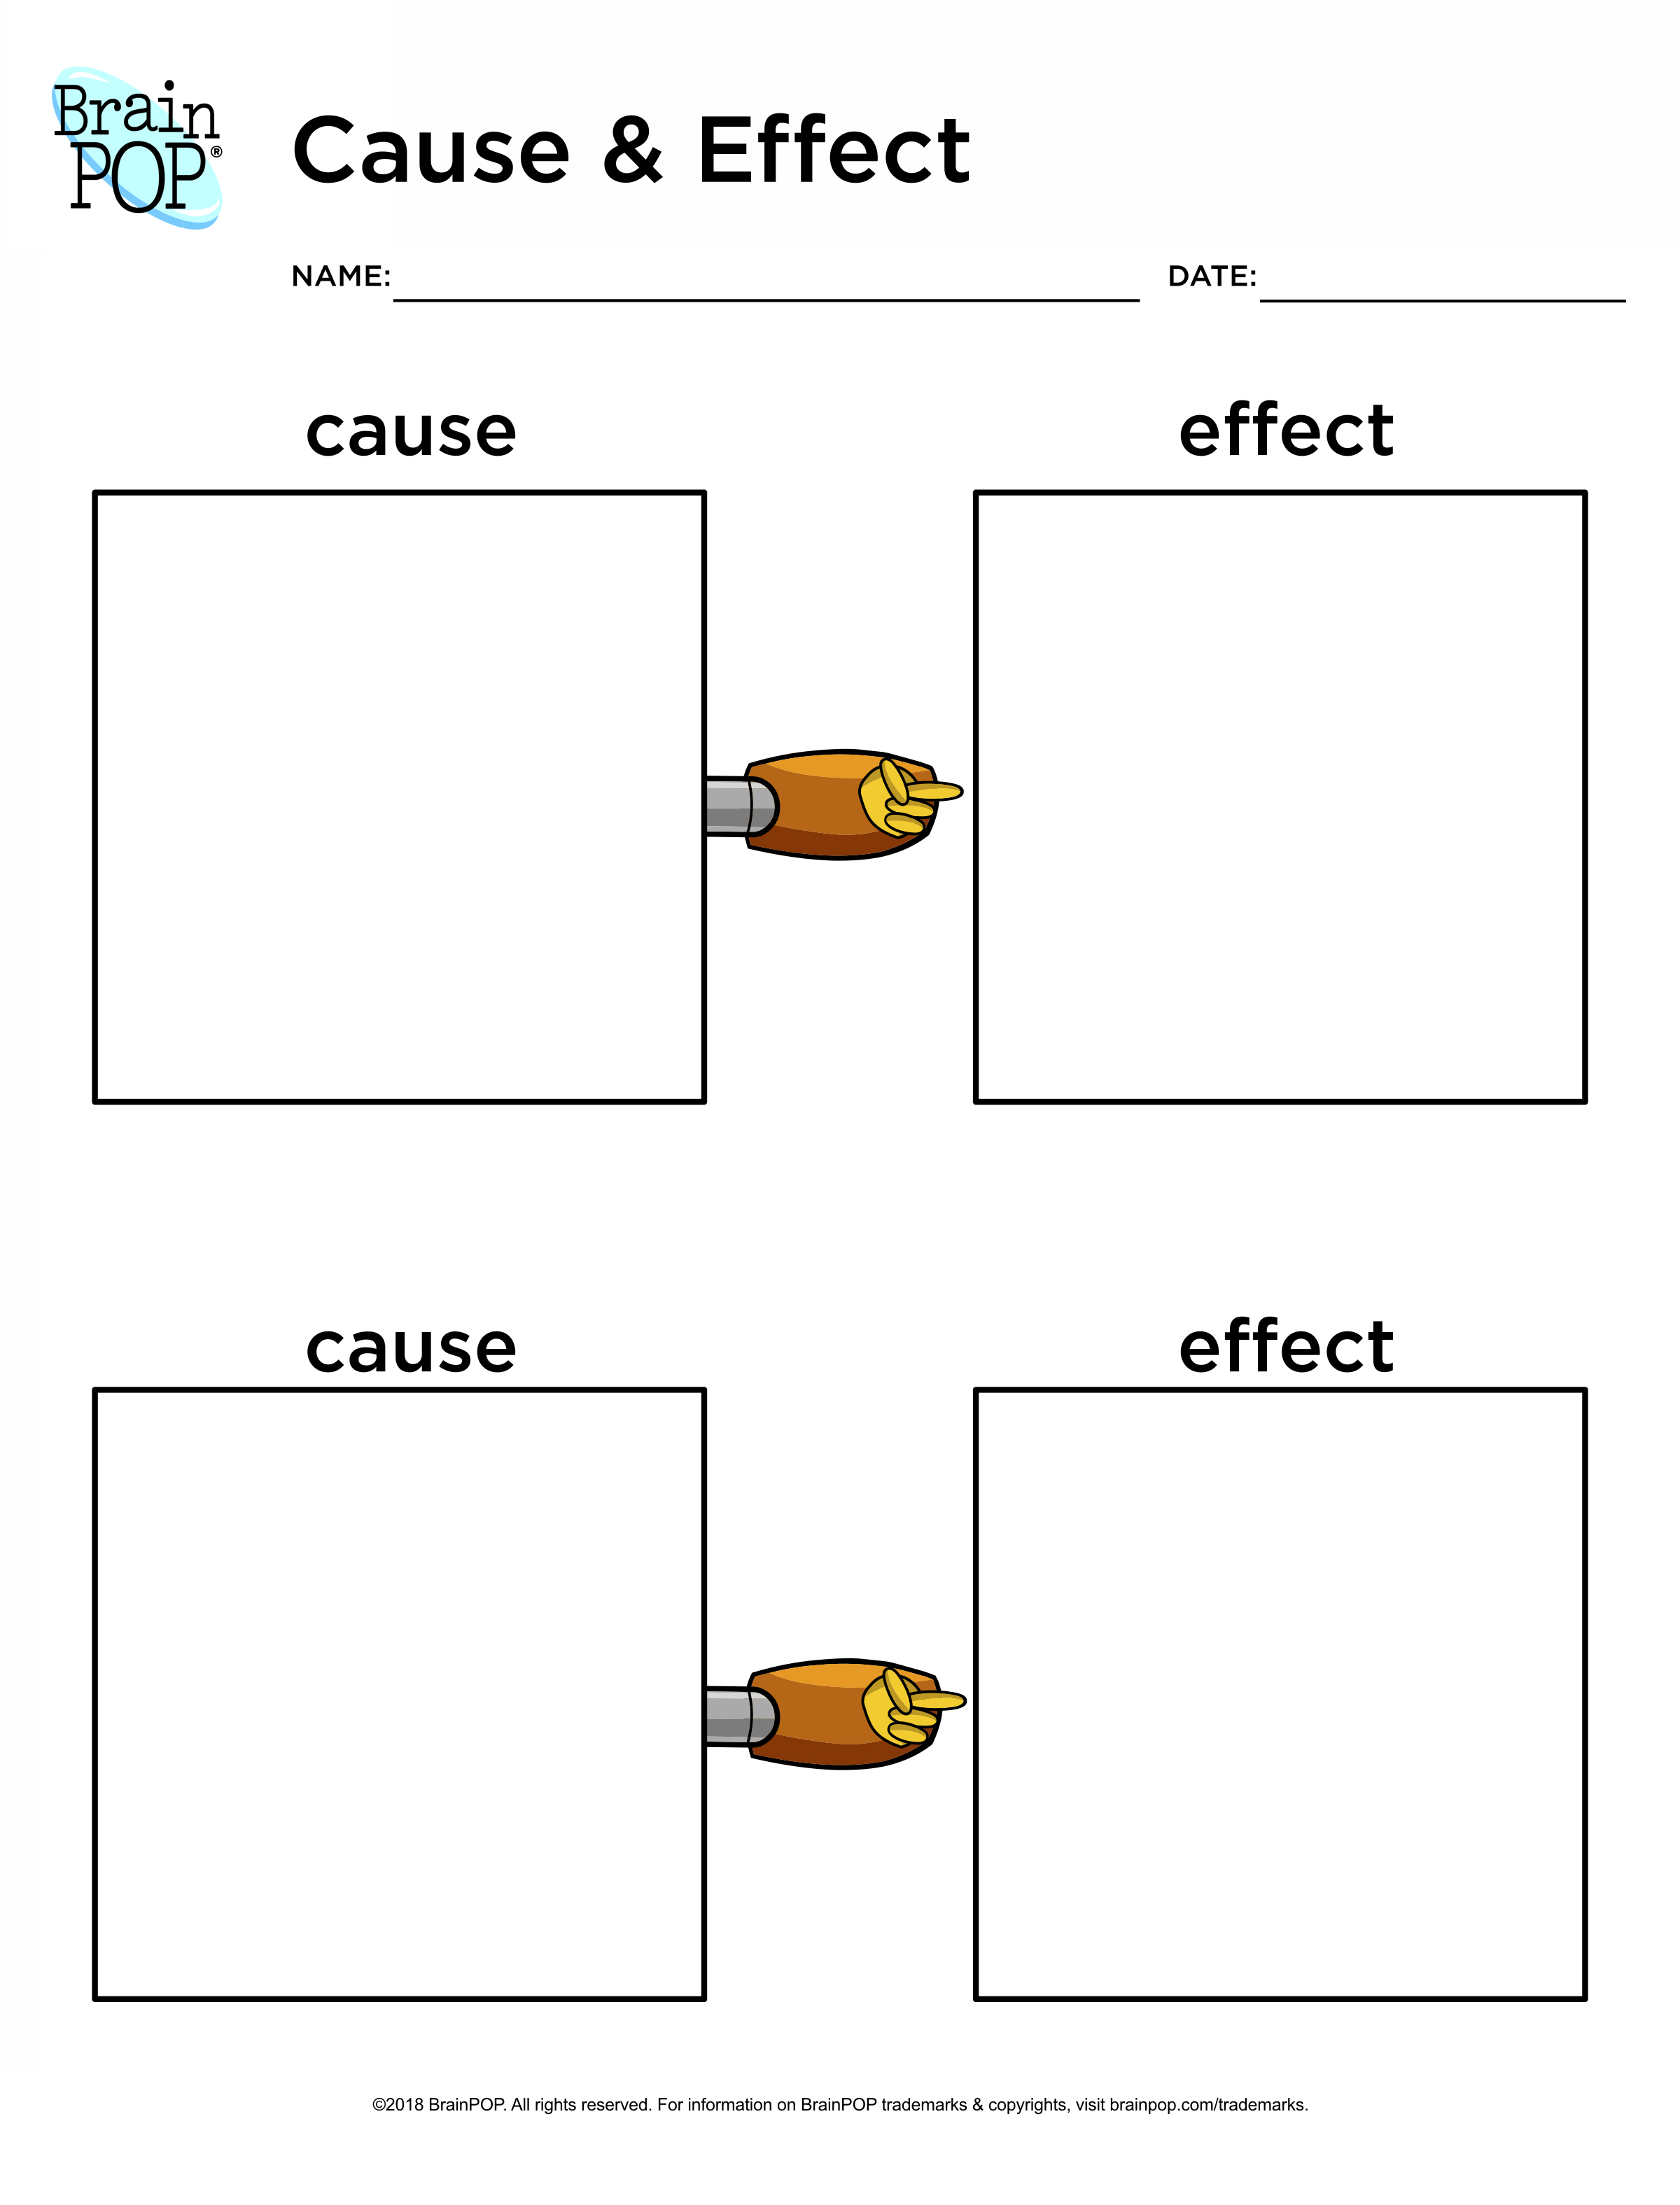 cause and effect | brainpop educators